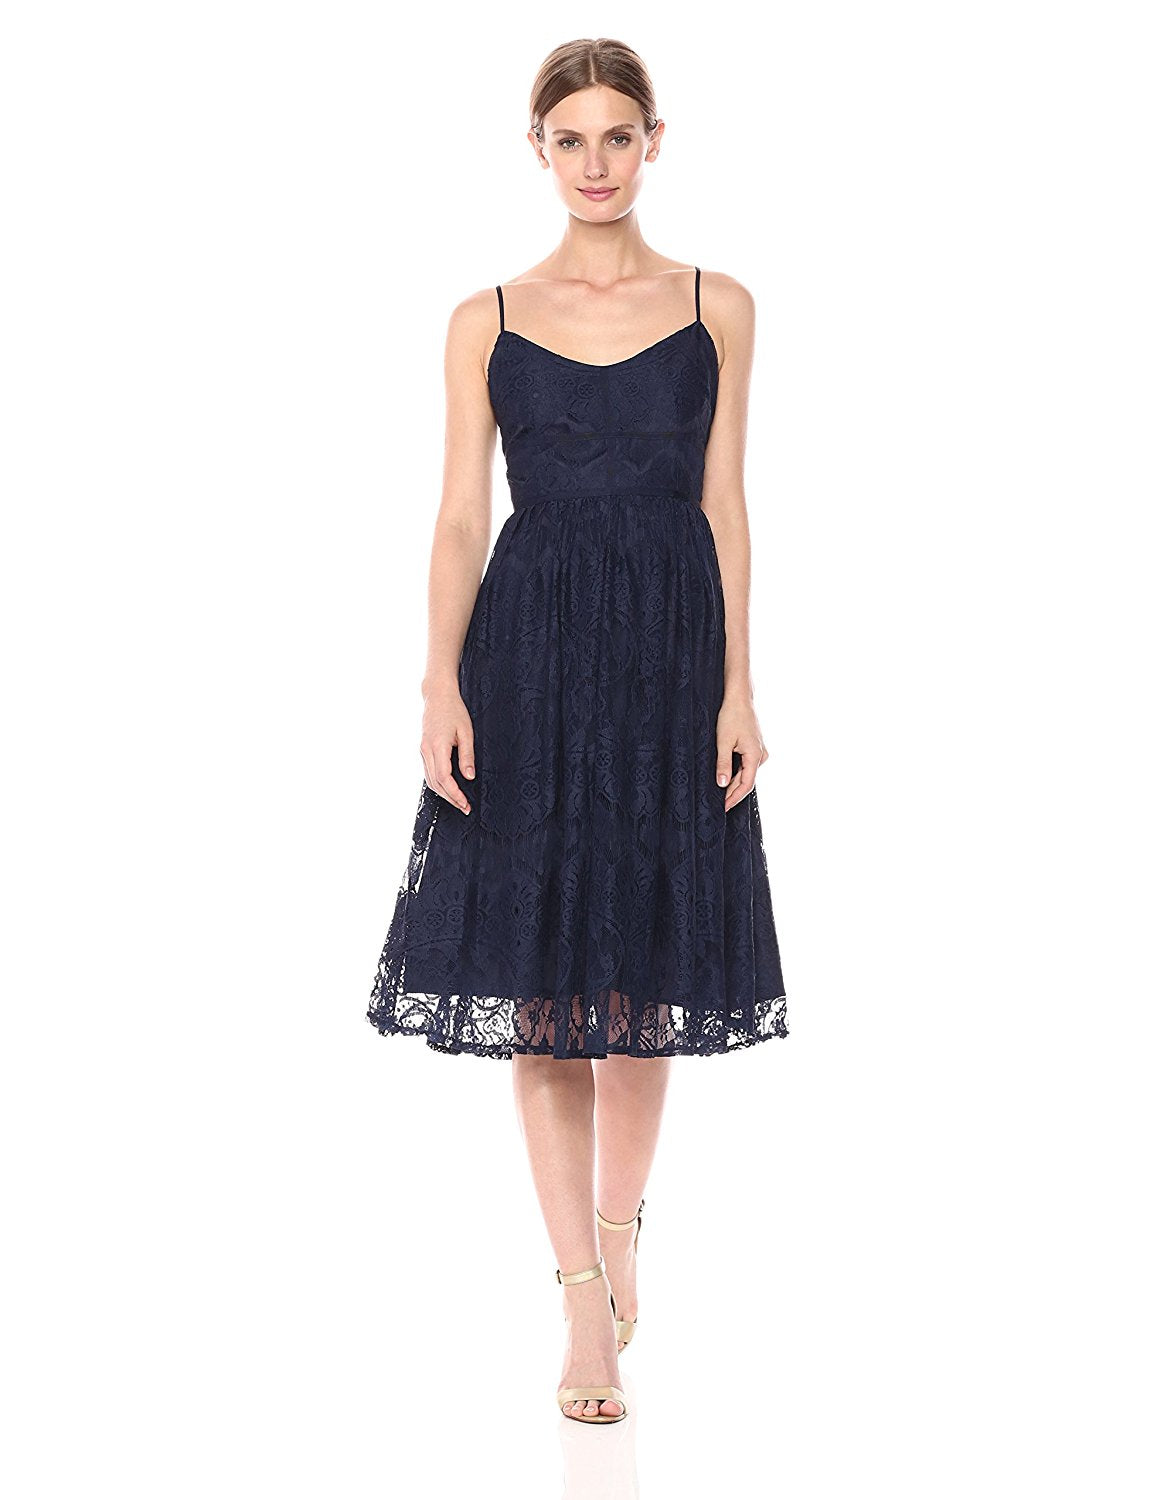 BB Dakota Galena Dress in Navy BH308269